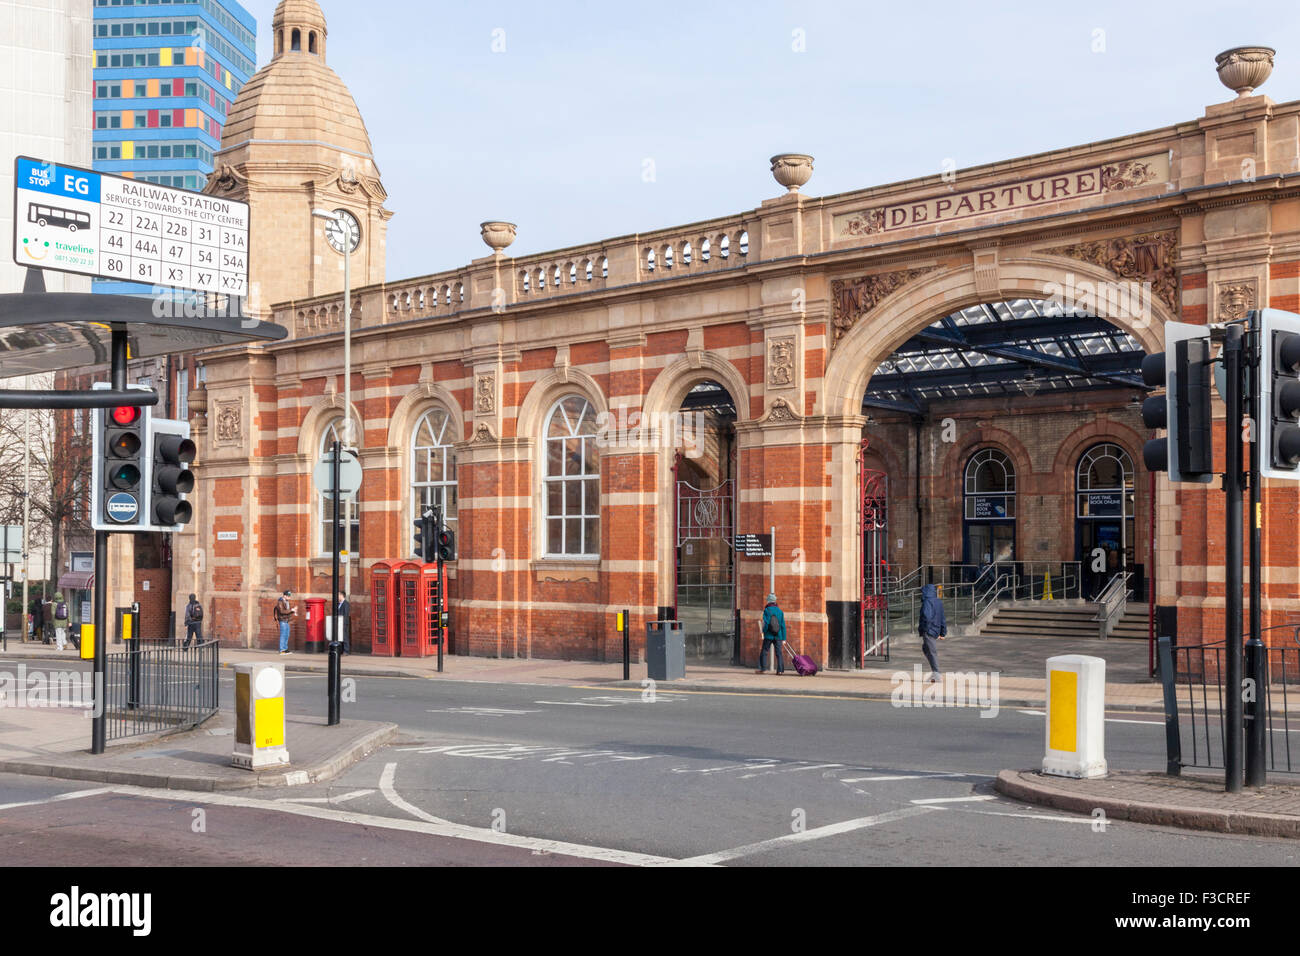 Leicester Railway Station, Leicester, England, UK - Stock Image